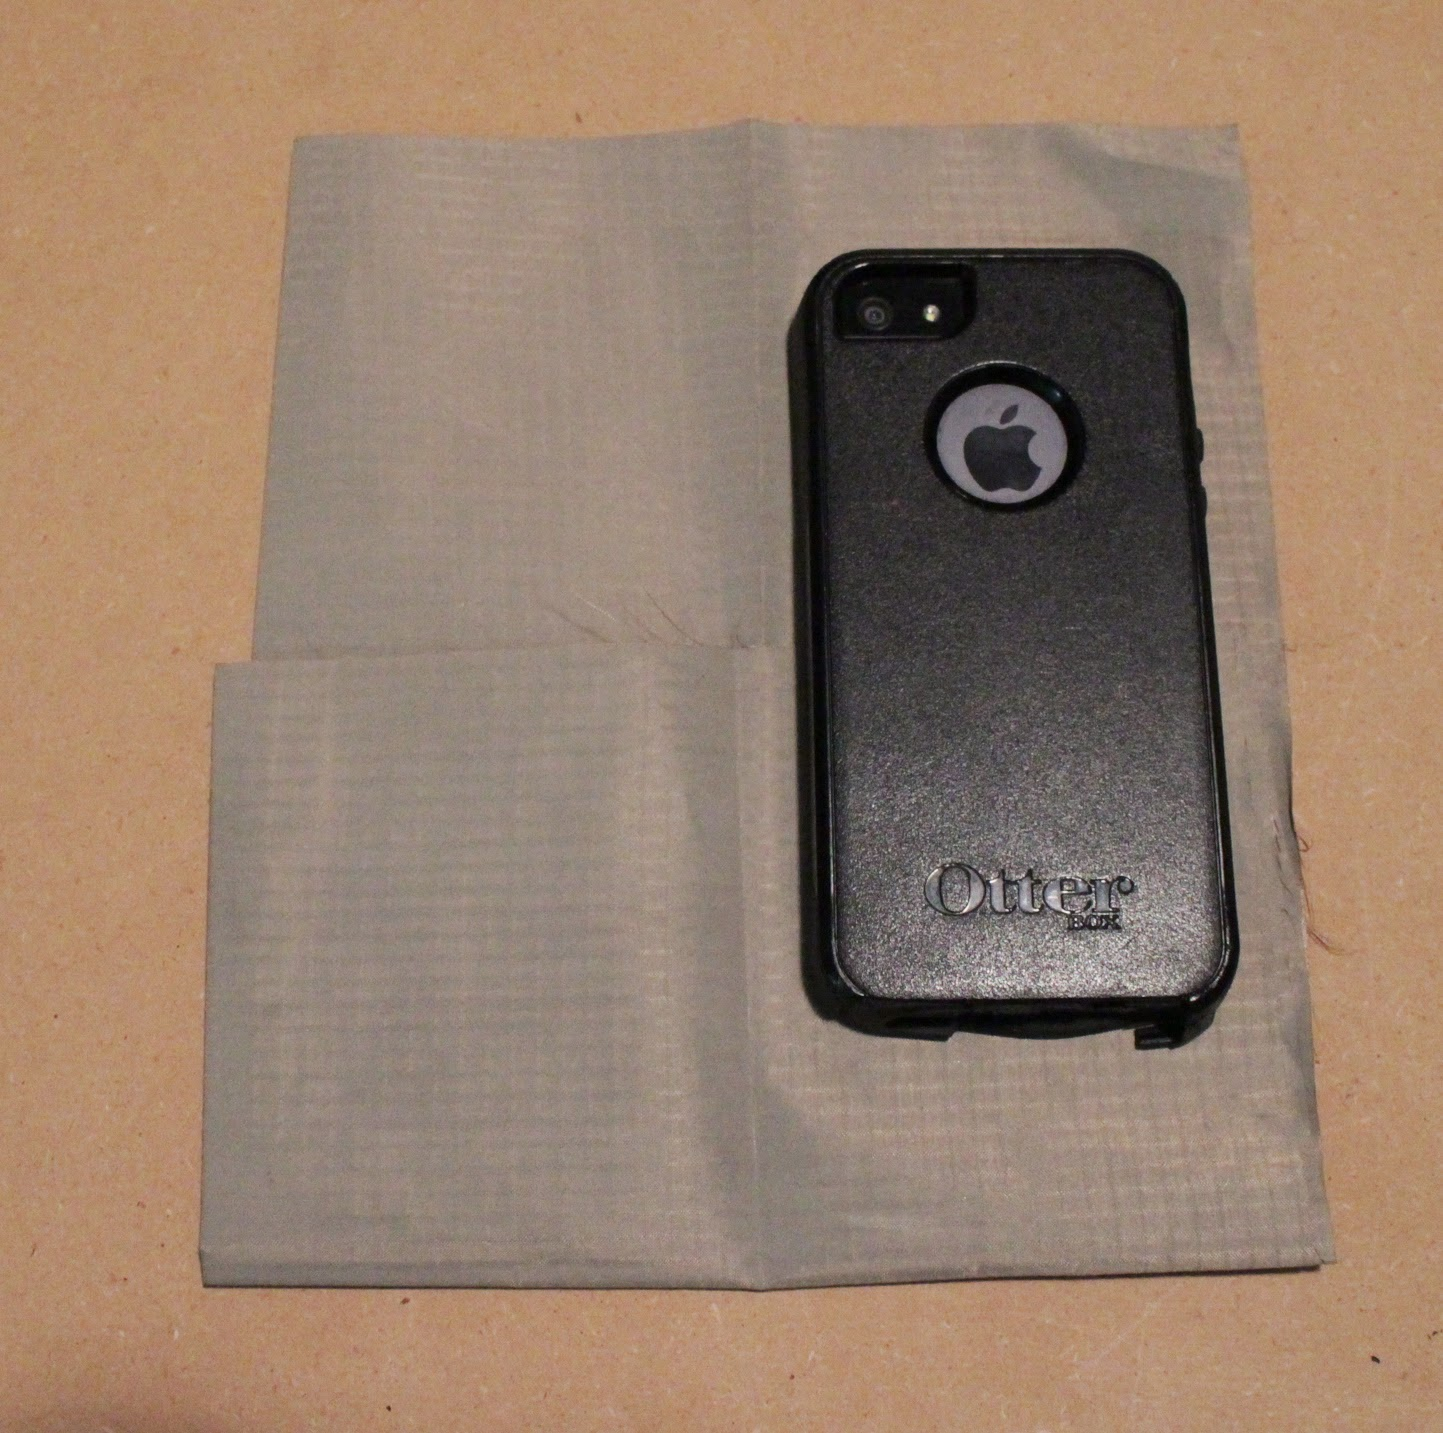 Faraday cage phone case review